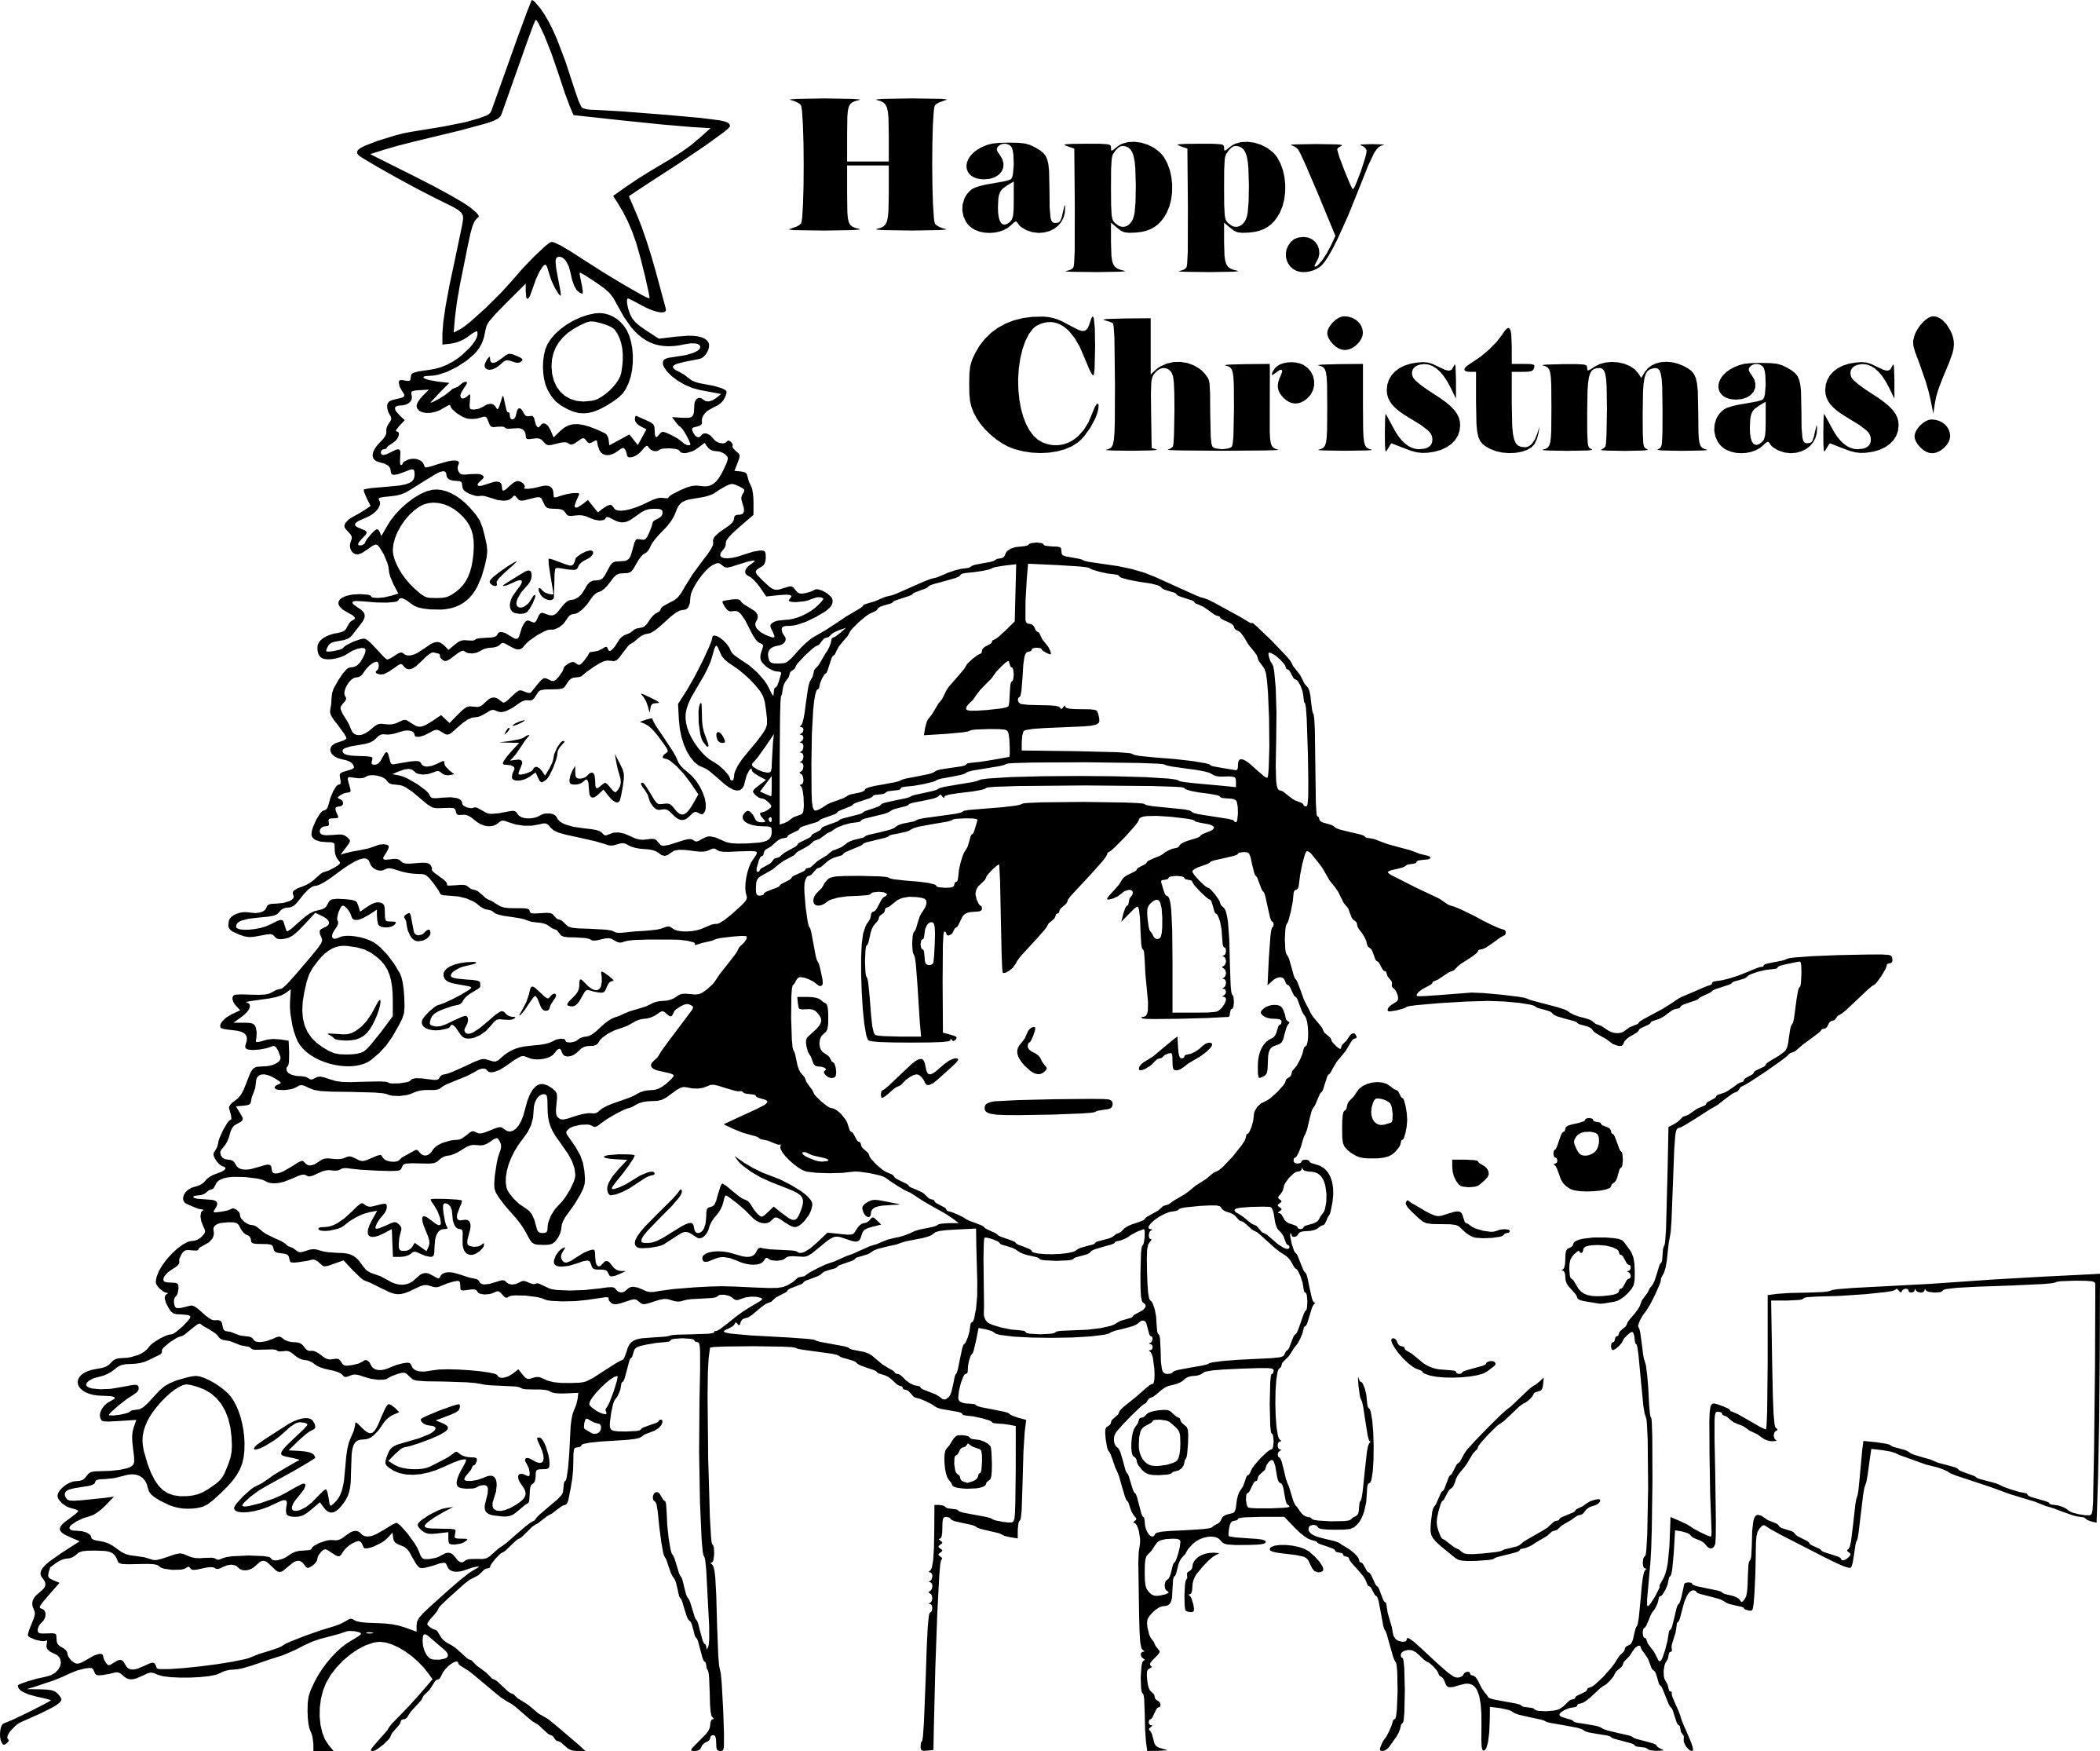 Imprimer Un Dessin De Noel Superbe Design Coloriage Pokemon No L